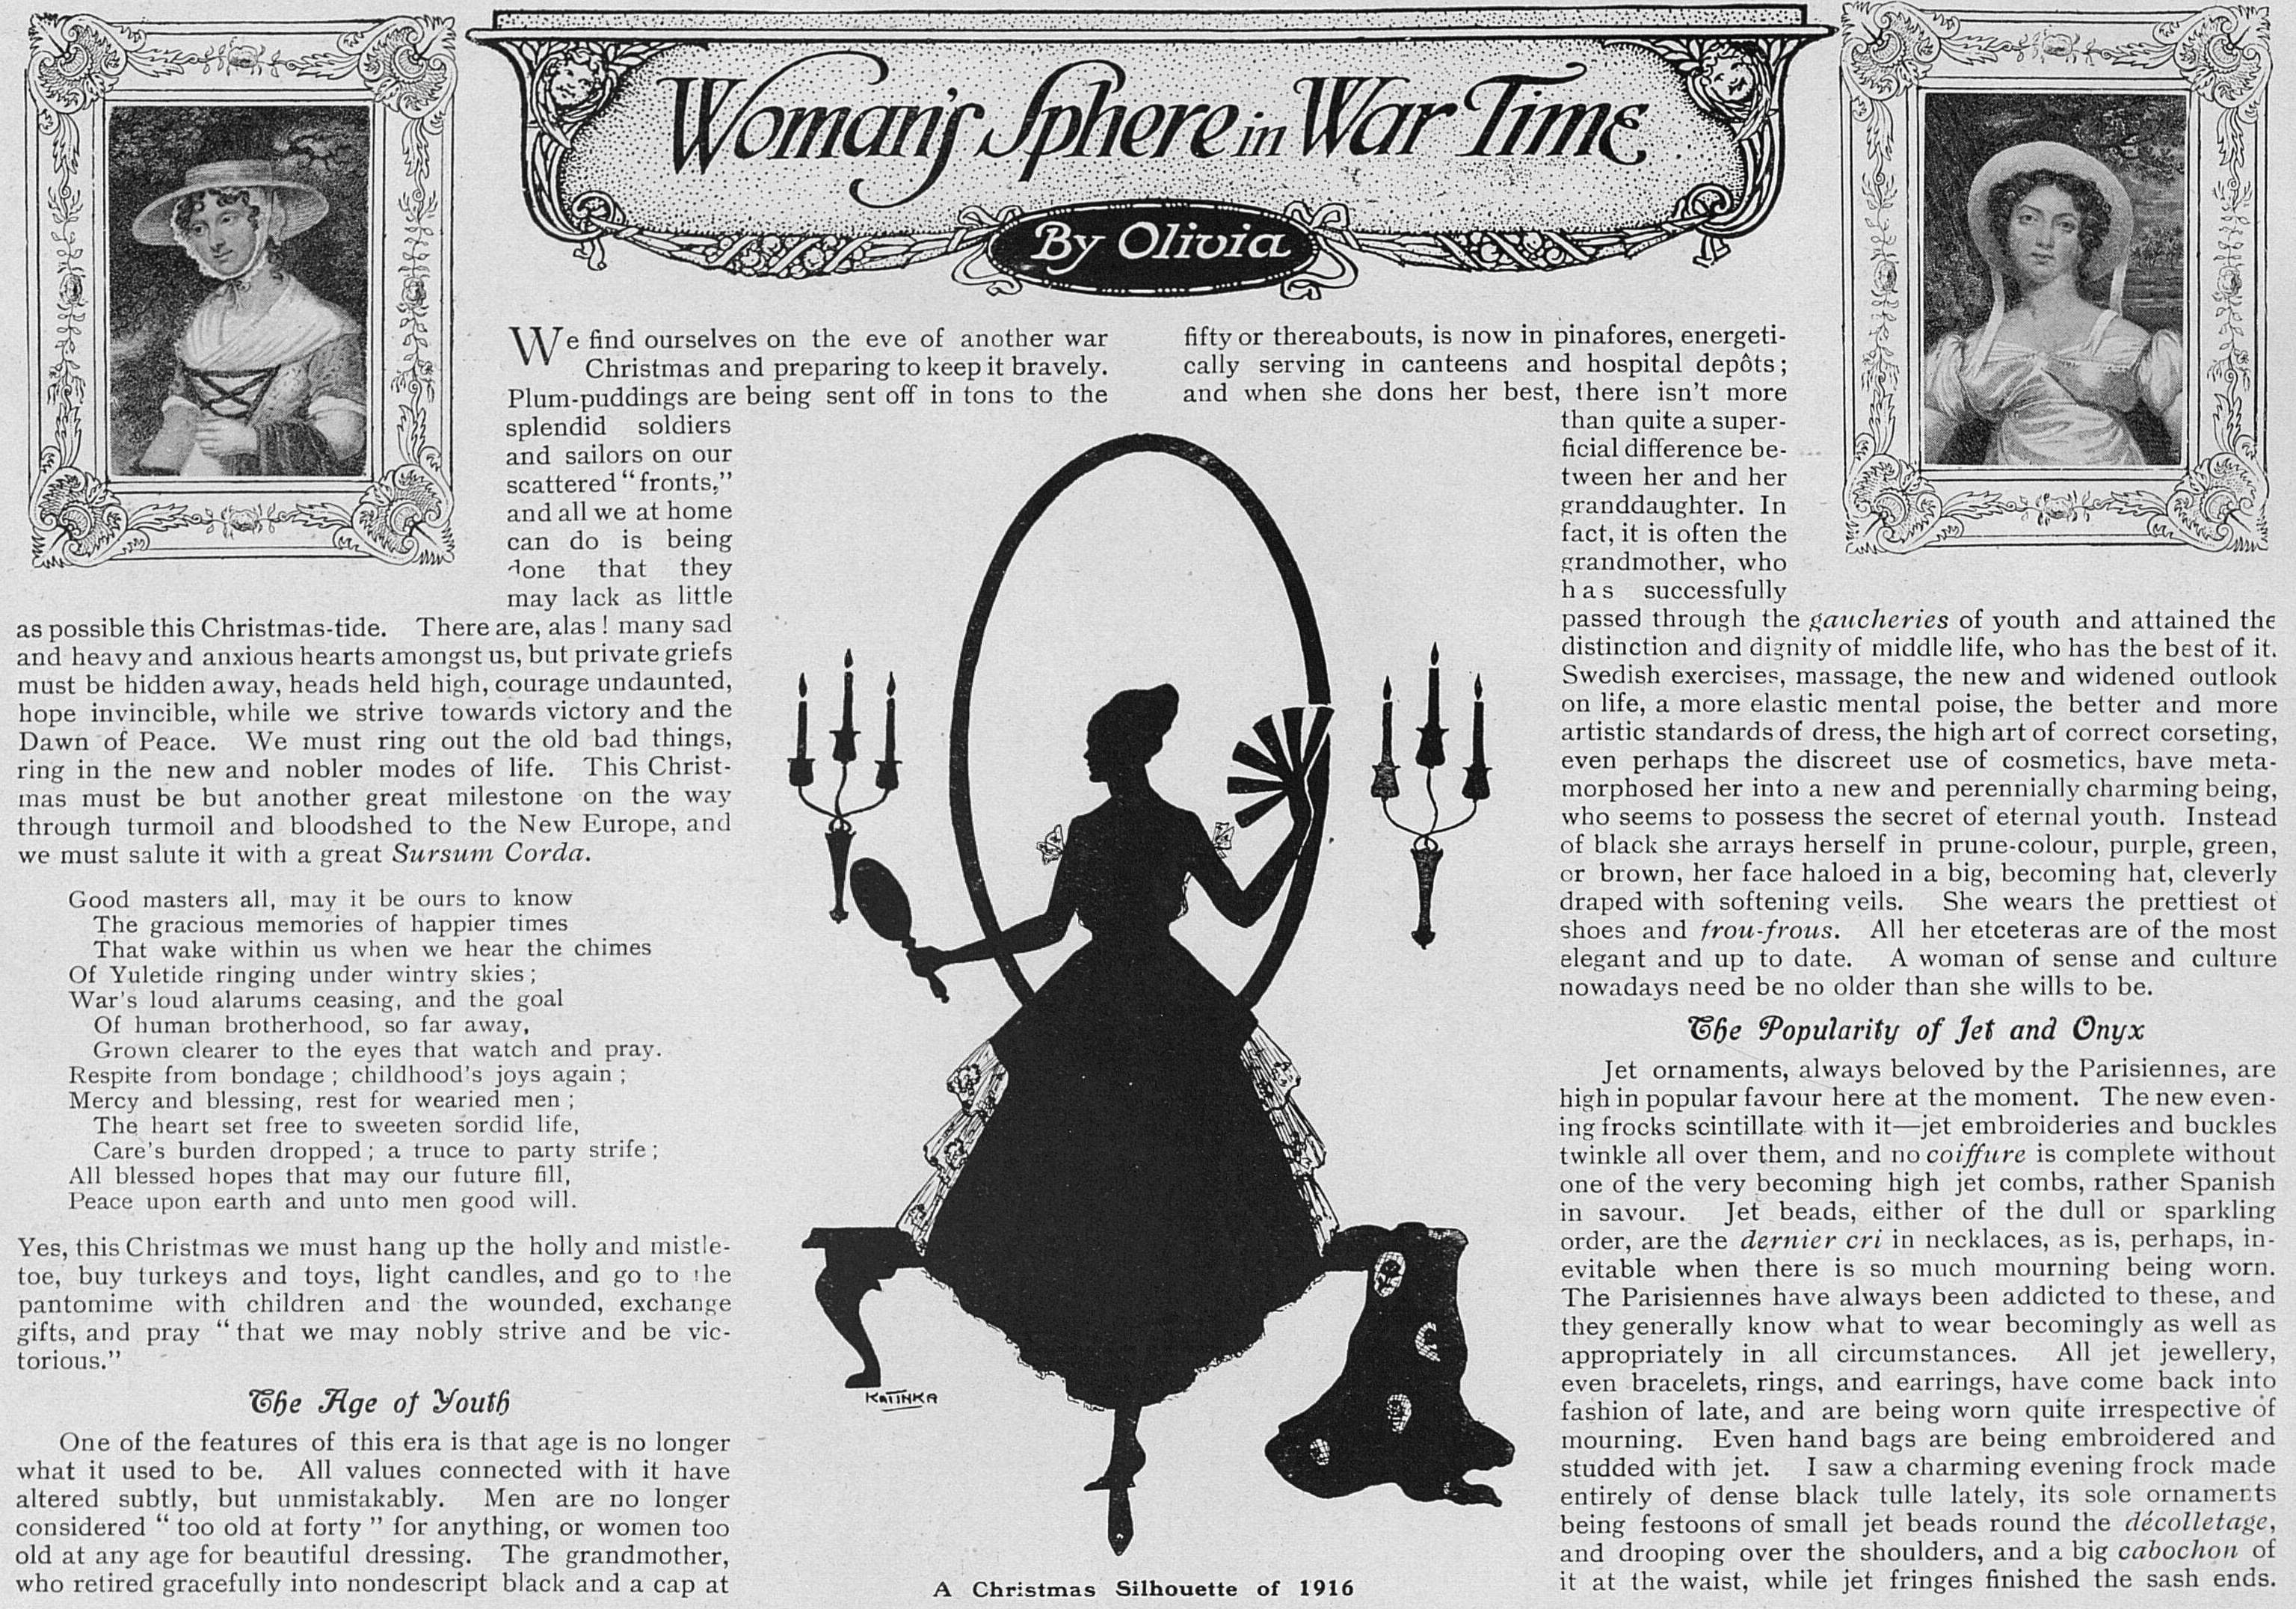 WomansSphereInWarTime_23Dec1916